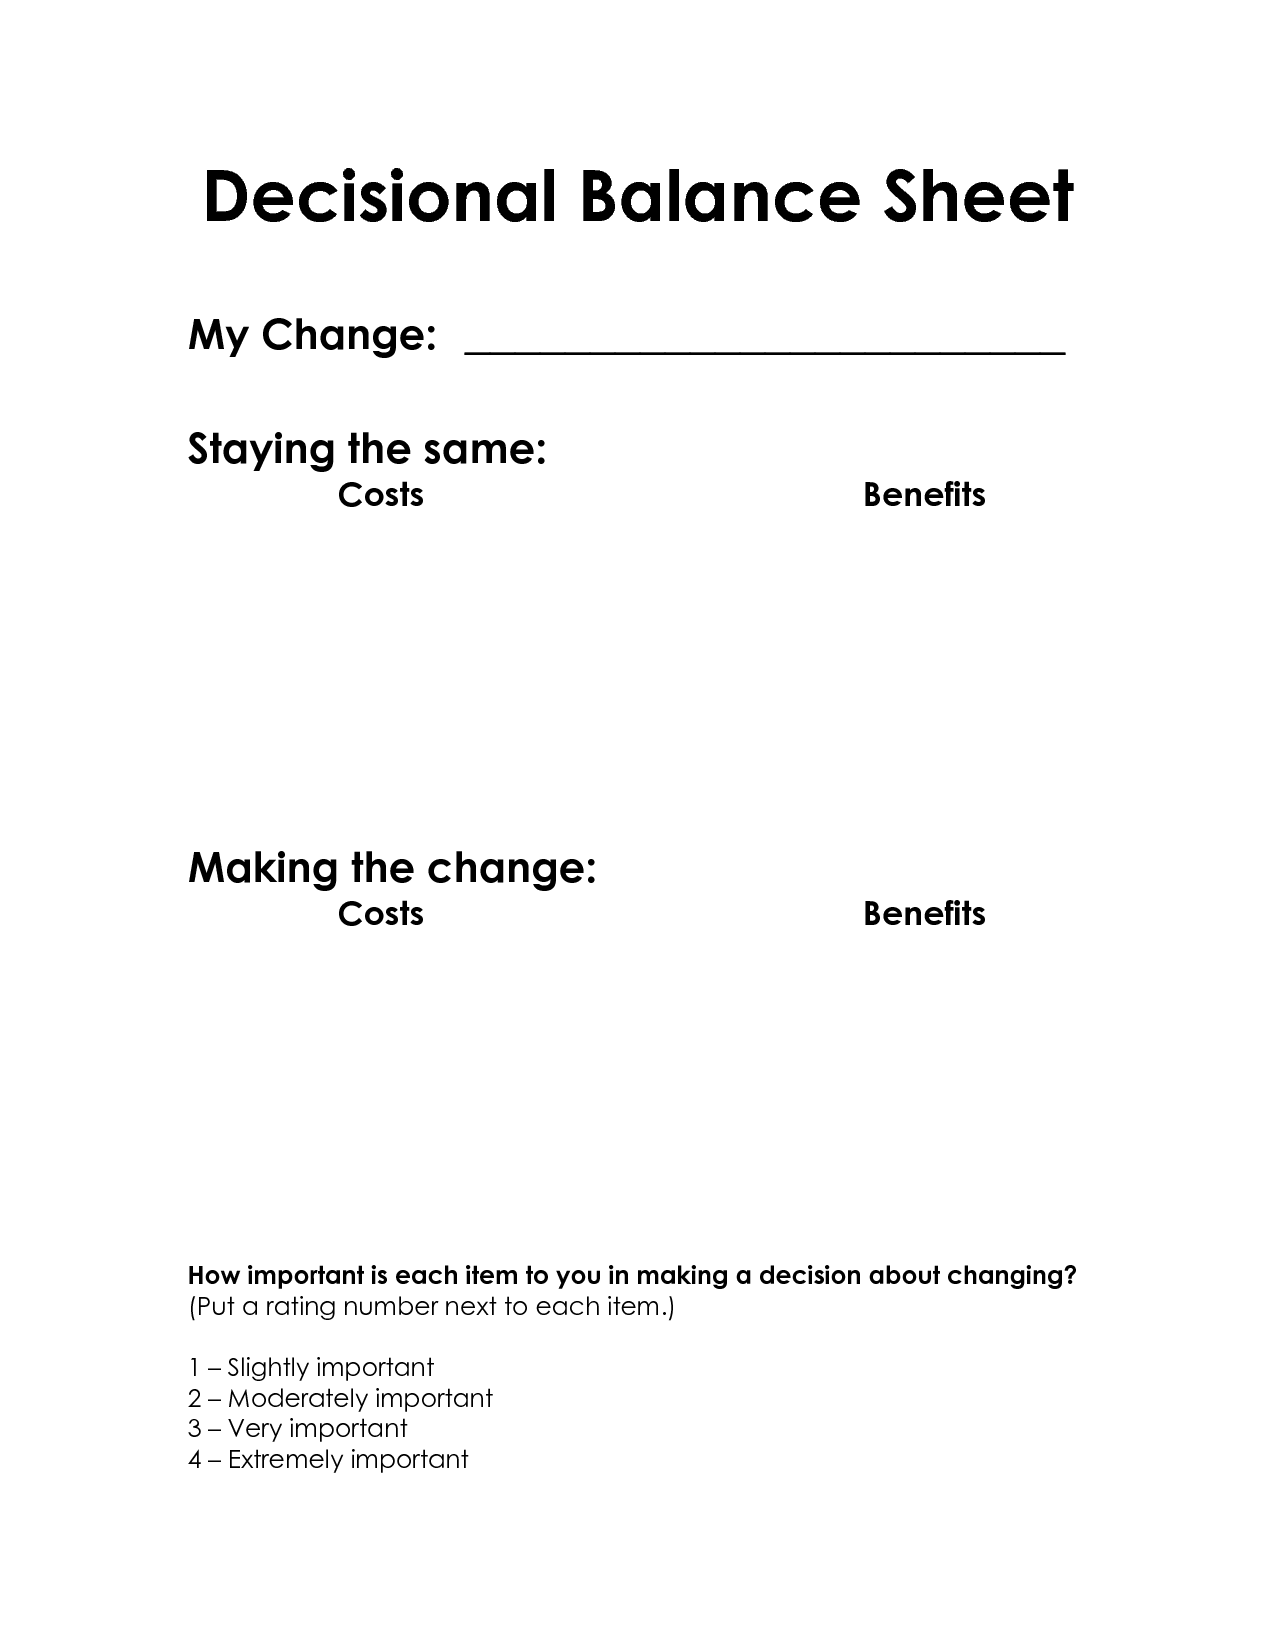 Decisional Balance Sheet (Motivational Interviewing ...